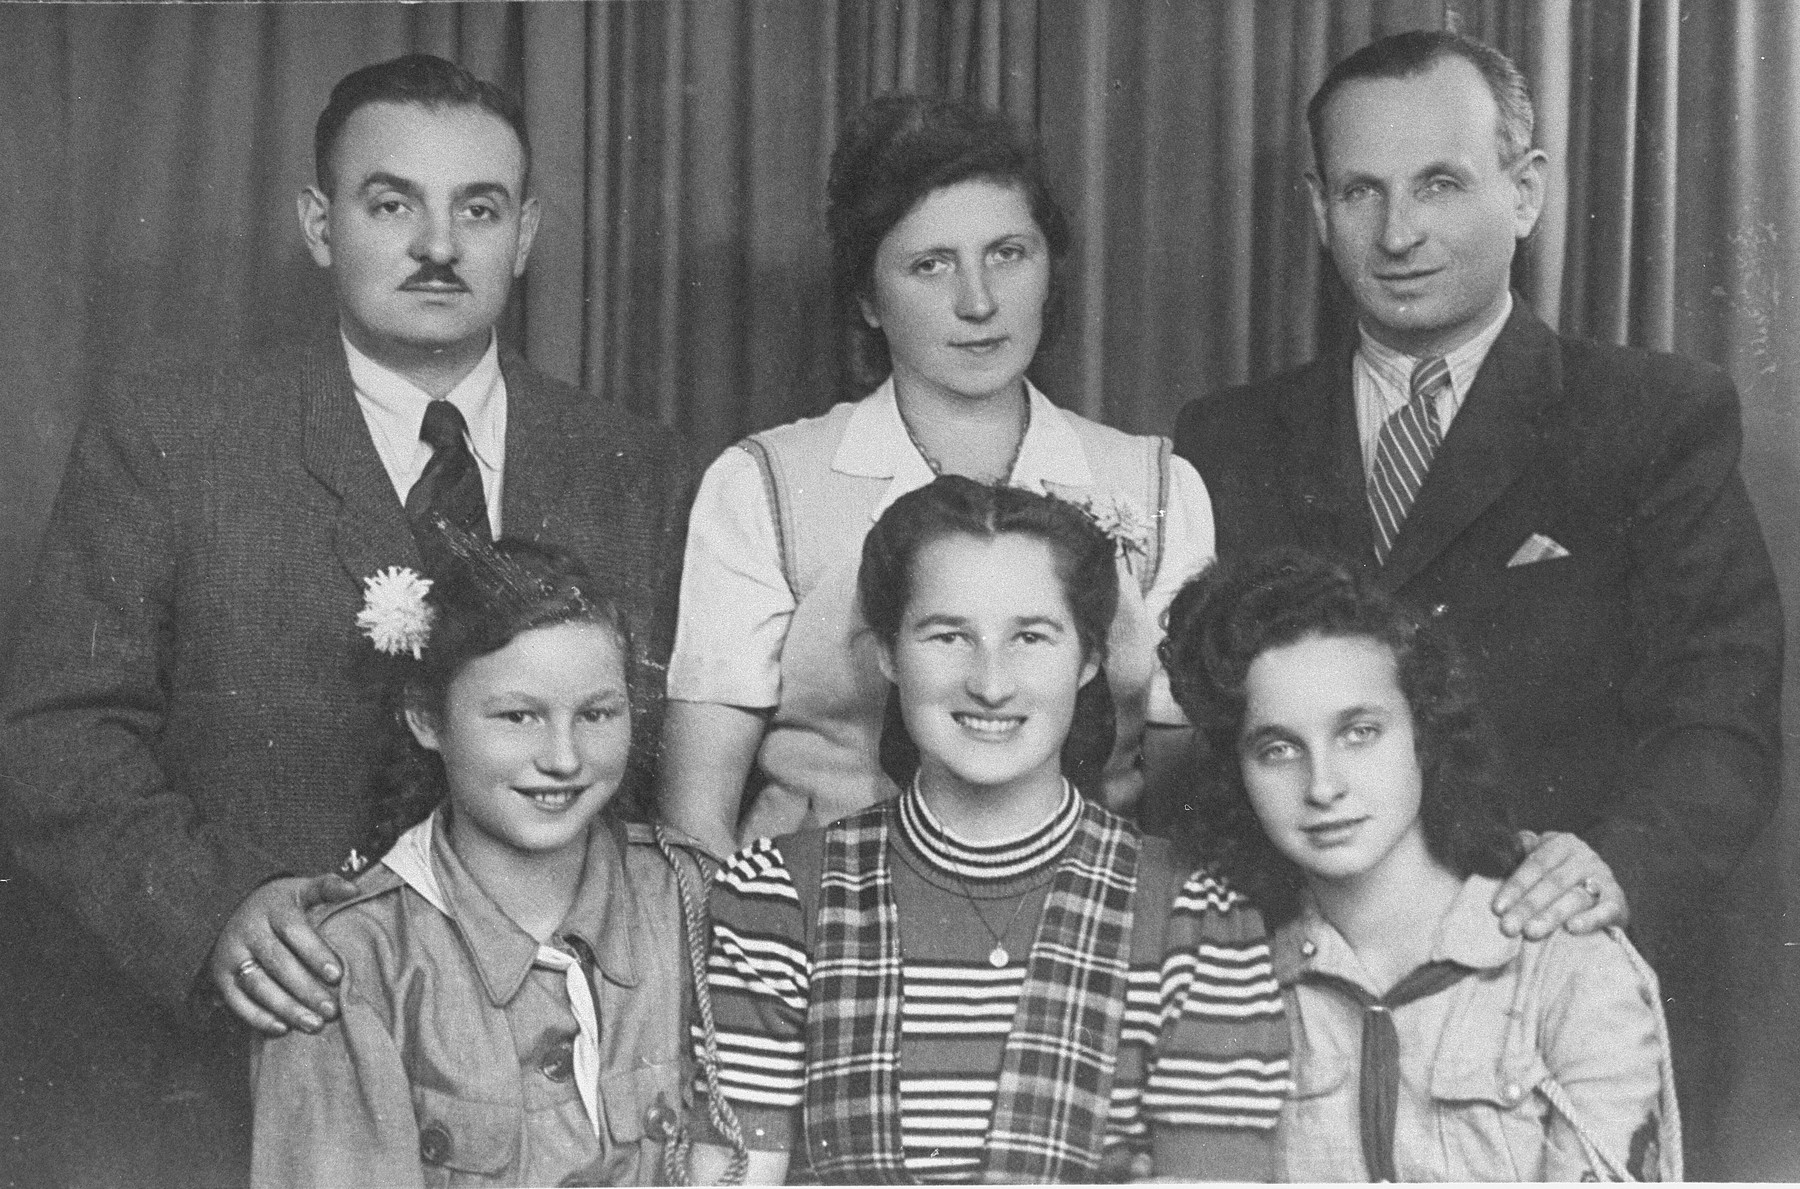 Polish rescuer Stefania Podgorska Burzminski poses with Jews she rescued during the German occupation of Poland.  Pictured in the front row from left to right are: Helena Podgorska, Stefania (Podgorska) Burzminski and Judy Shylenger.  In the back row from left to right are: Joe Burzminski, Mr. Shylenger and Mrs. Shylenger.